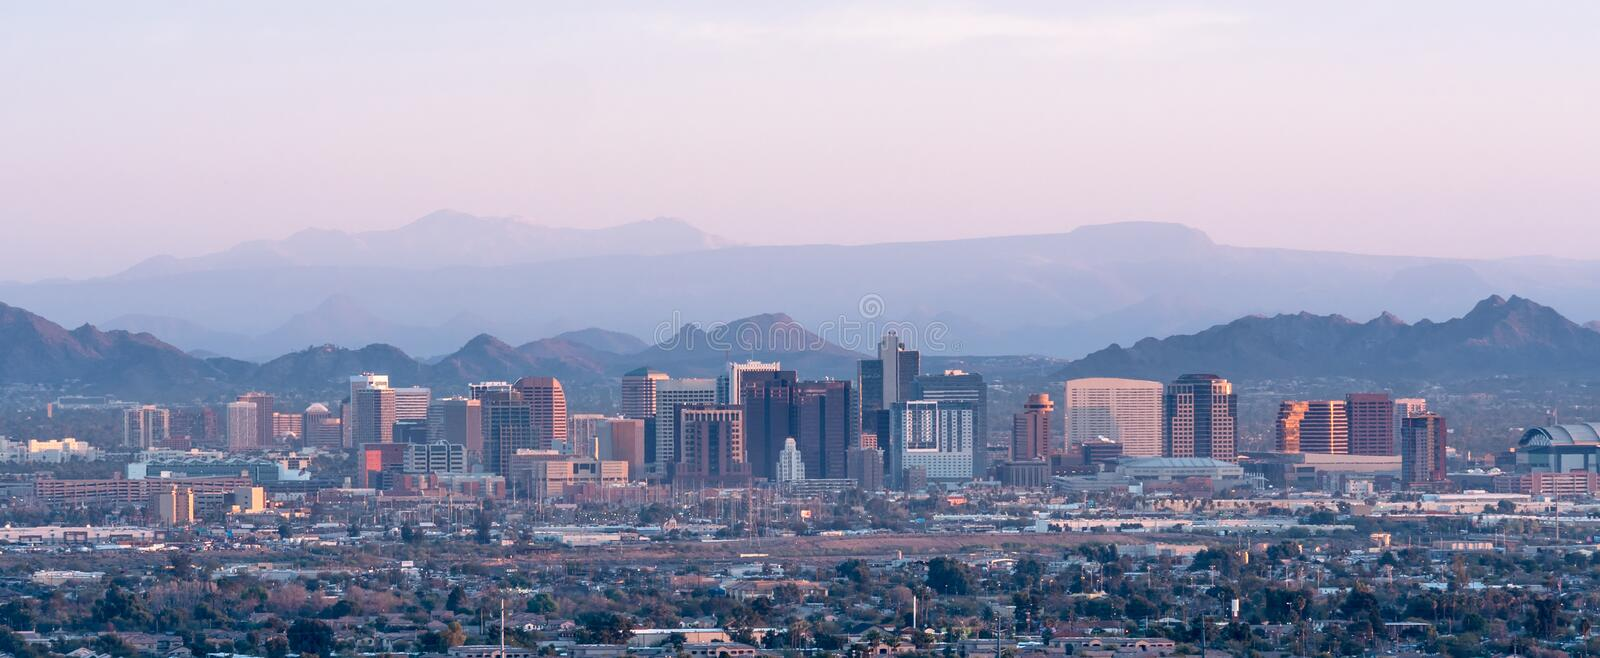 Phoenix Skyline at Sunset stock images